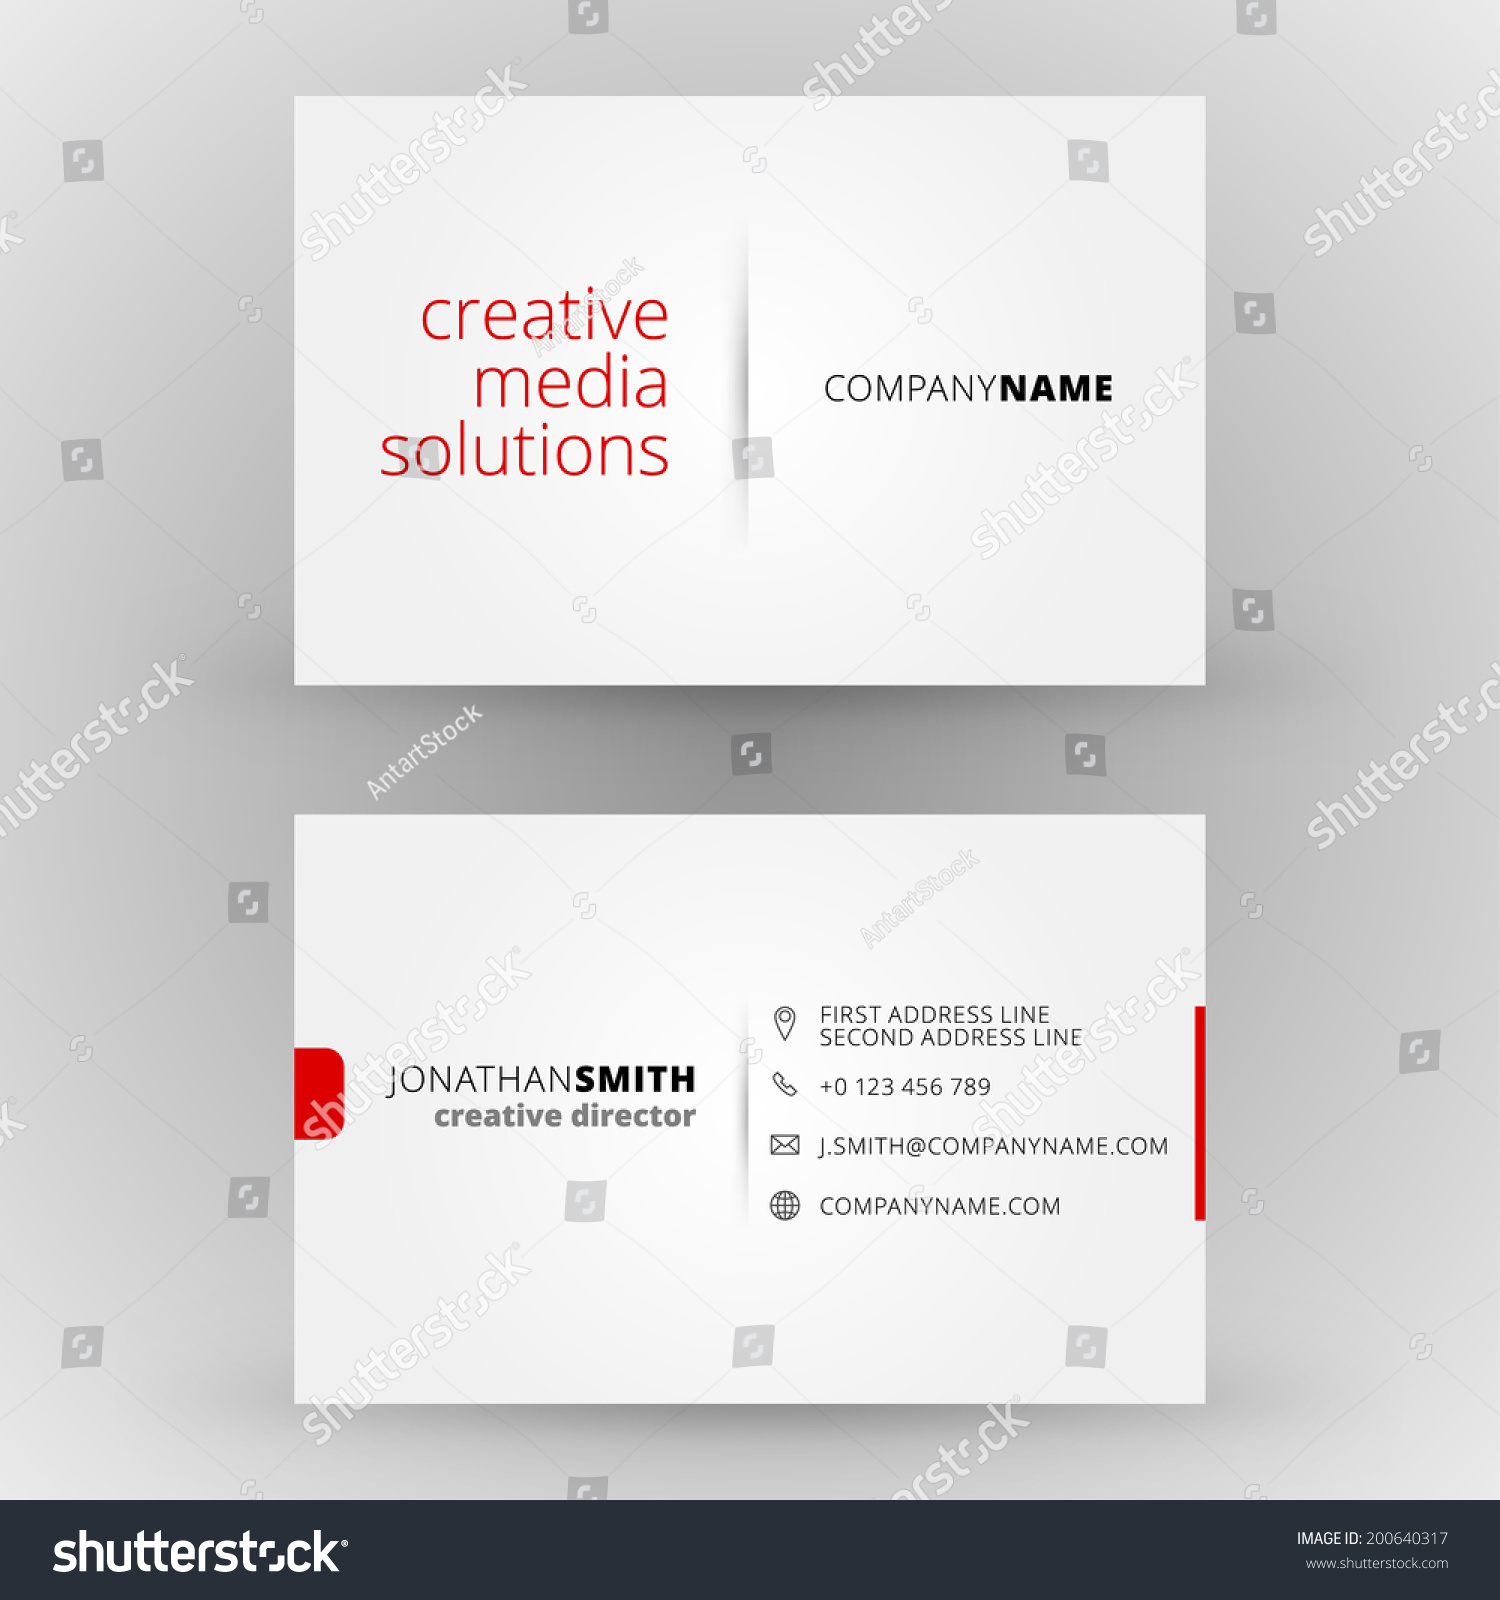 Business card vector background stock vector 200640317 for Business card background vector